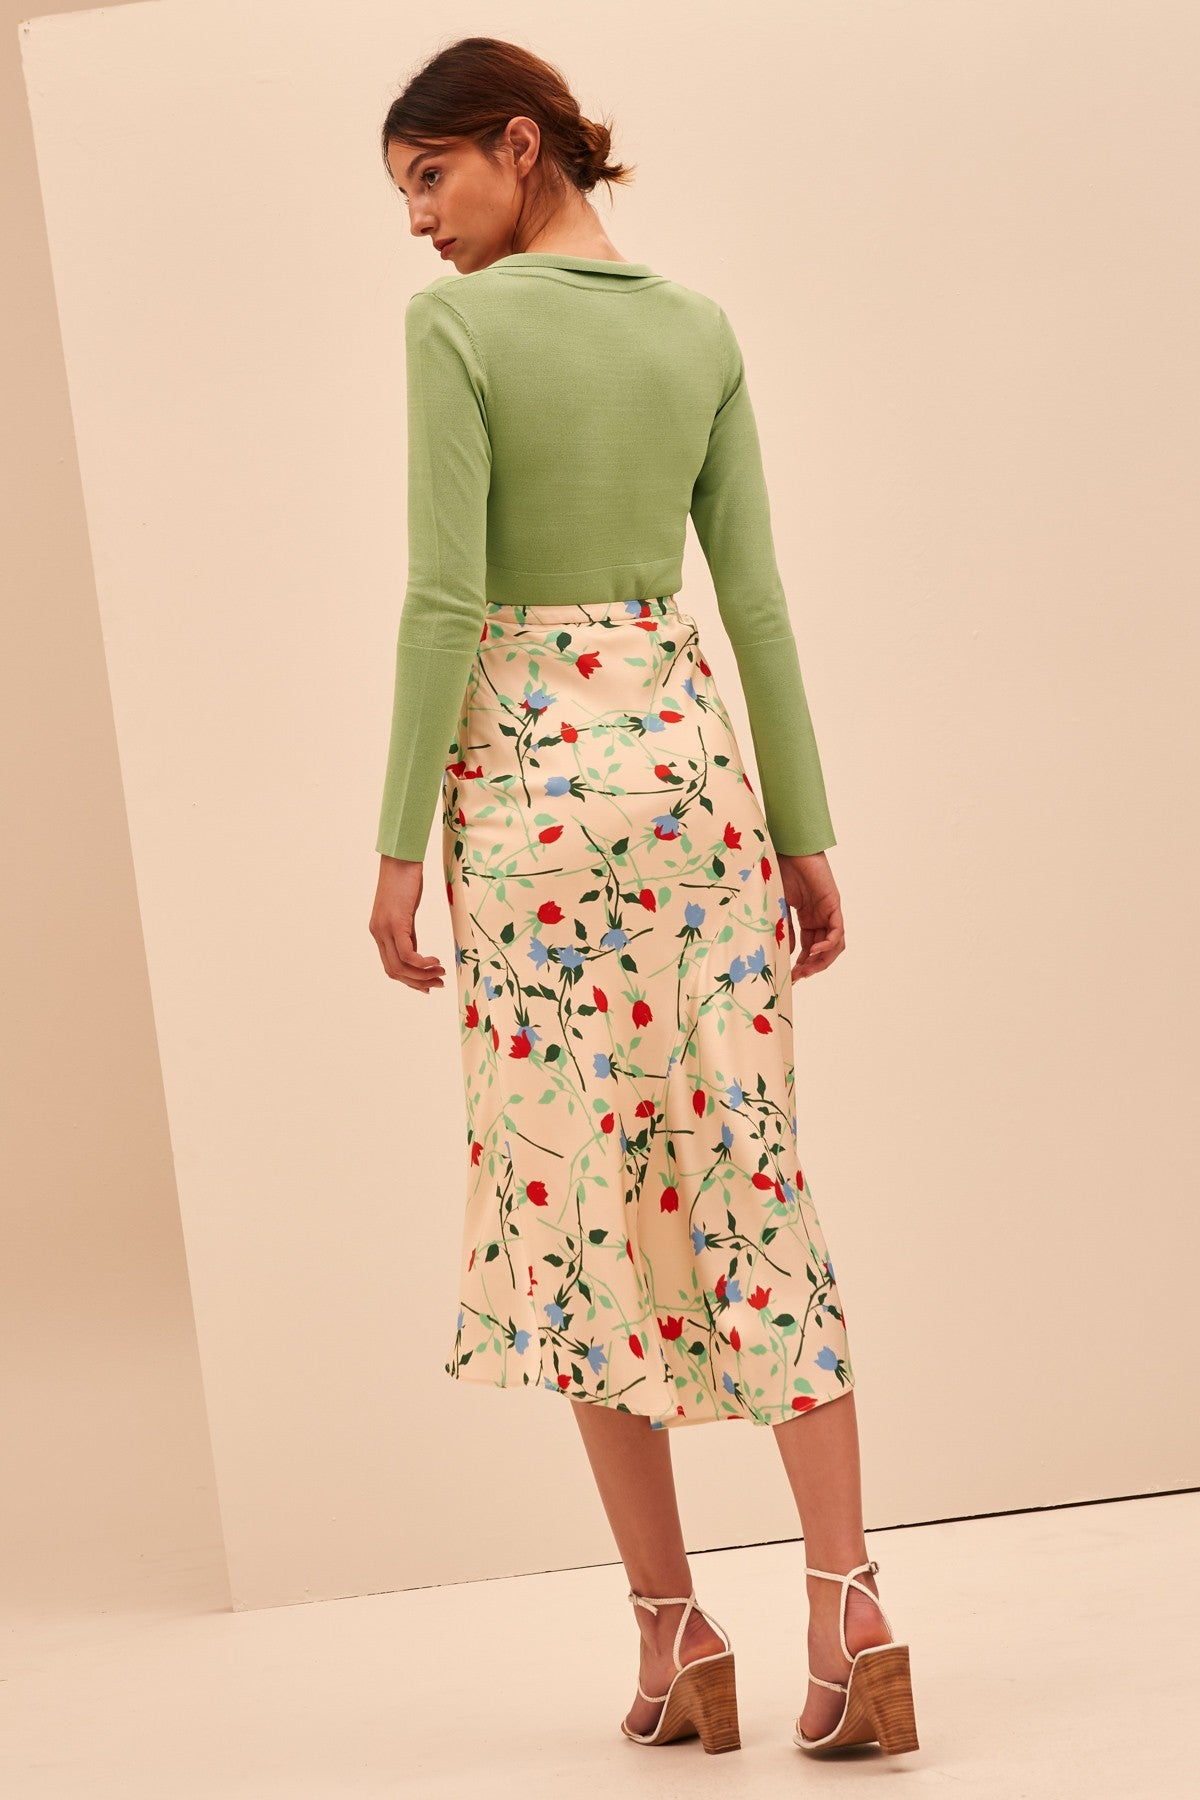 SECTIONAL SKIRT apricot floral